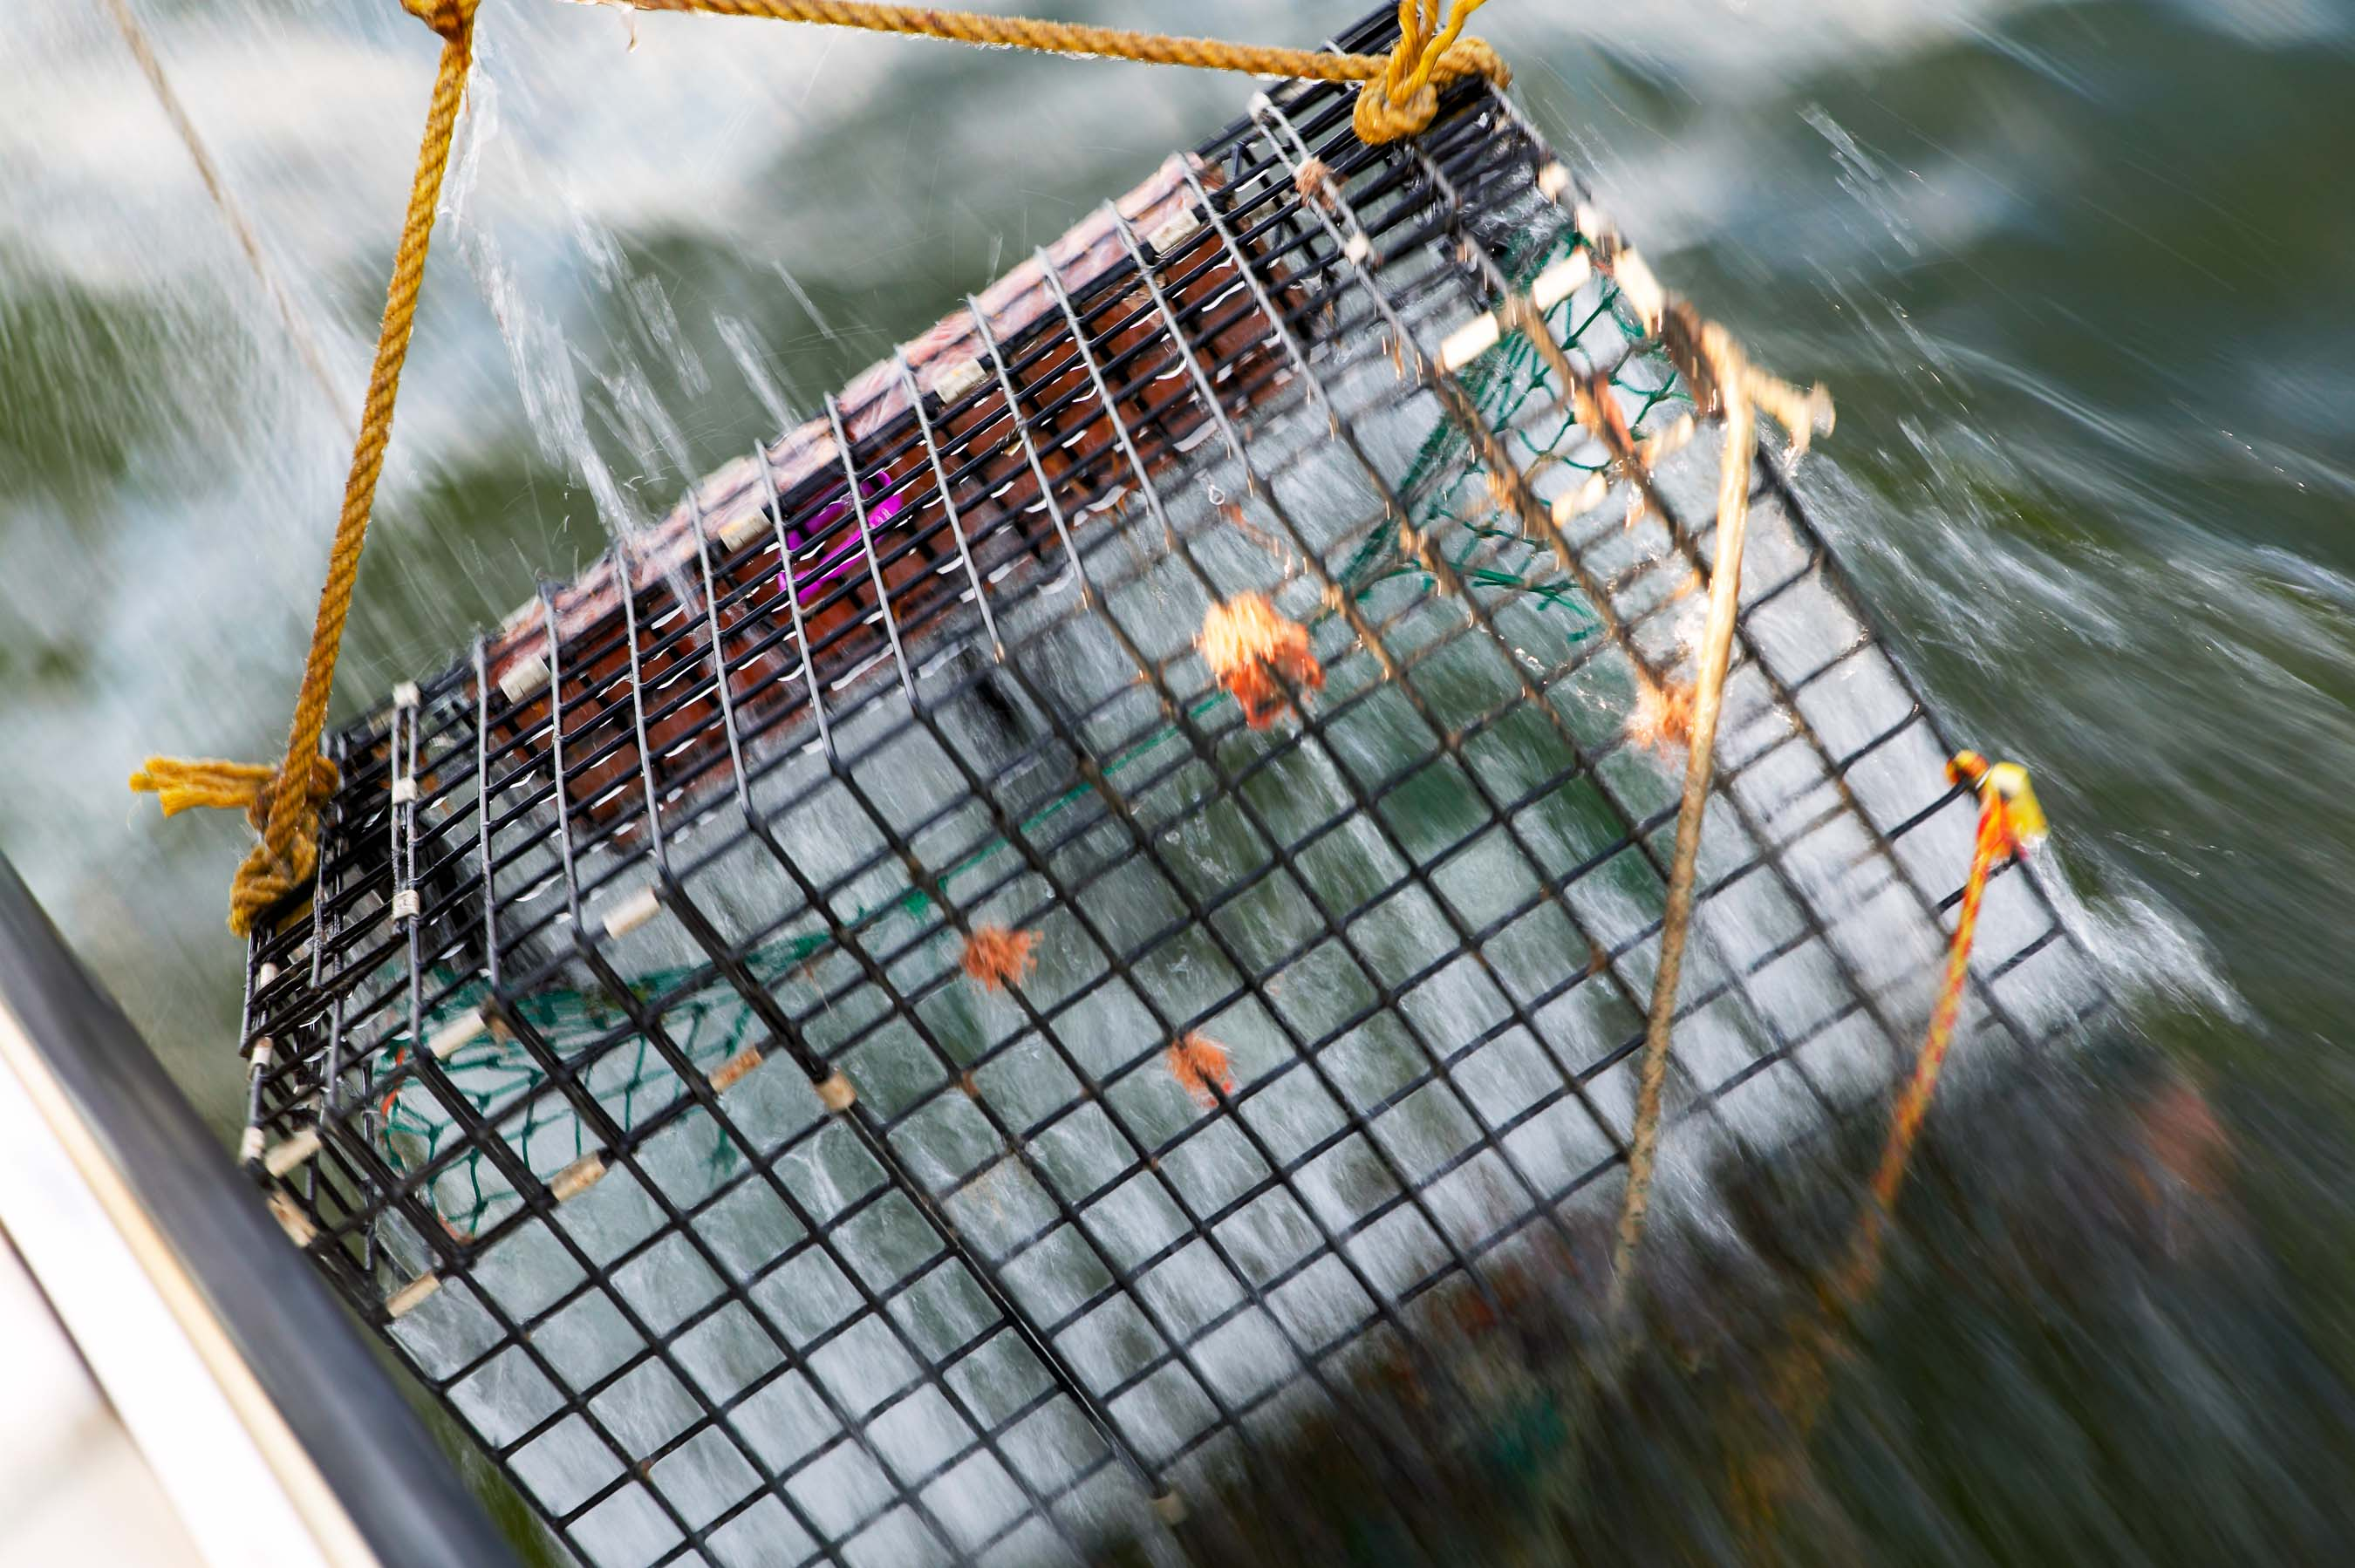 Lobster trap being hauled